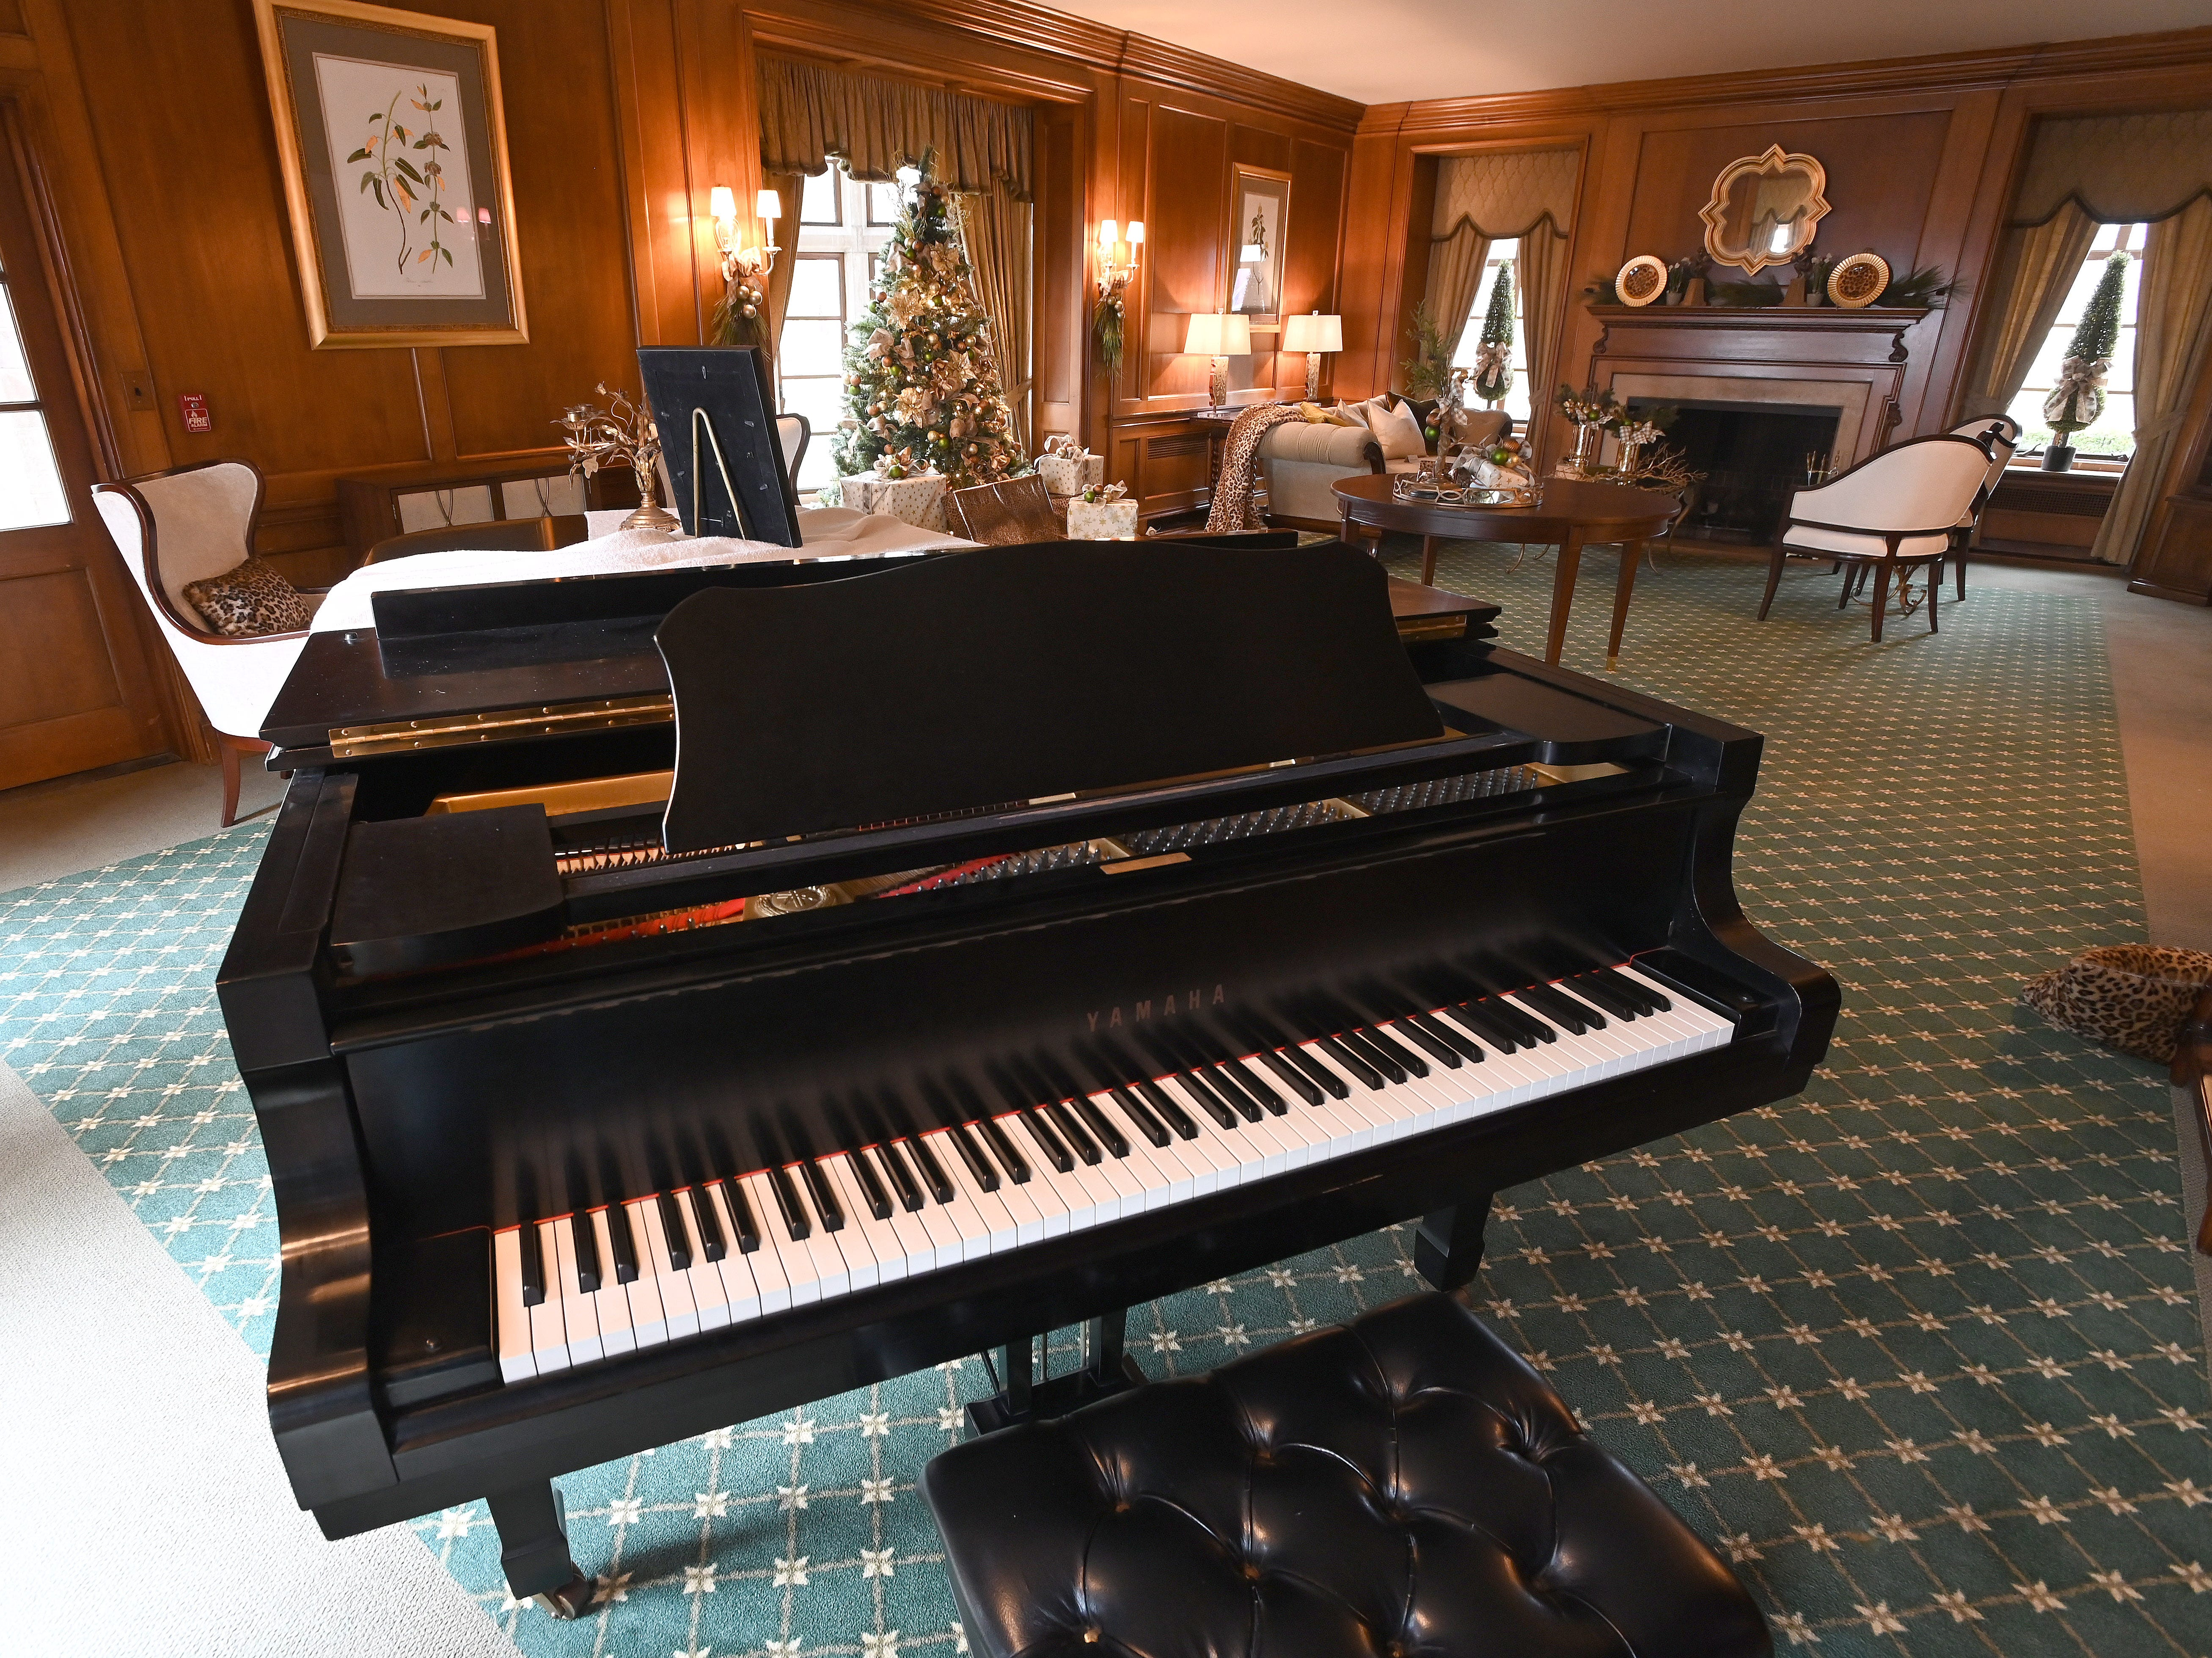 A grand piano dominates one end of the living room where volunteers have gotten to work decorating all the public rooms of the manor.